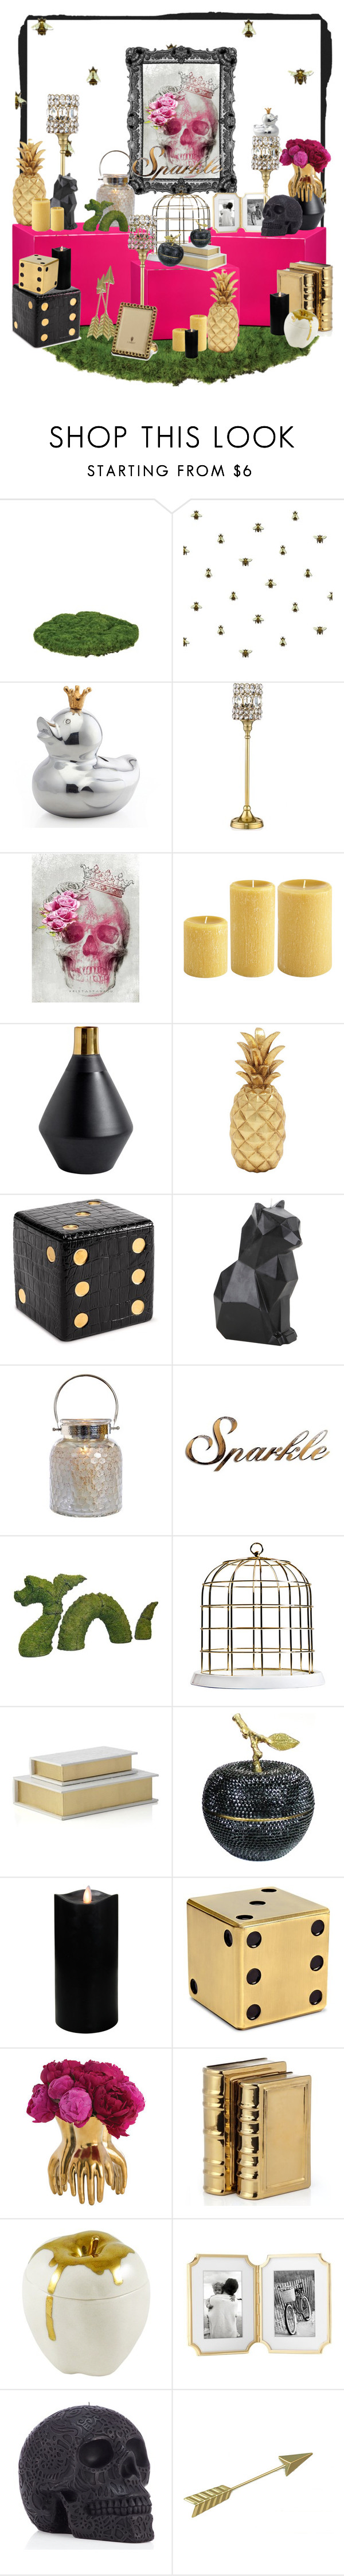 """Gold, Pink, Black, white"" by britt-catlynne-weatherall on Polyvore featuring interior, interiors, interior design, home, home decor, interior decorating, Timorous Beasties, Lunares, Leeber Limited and CB2"